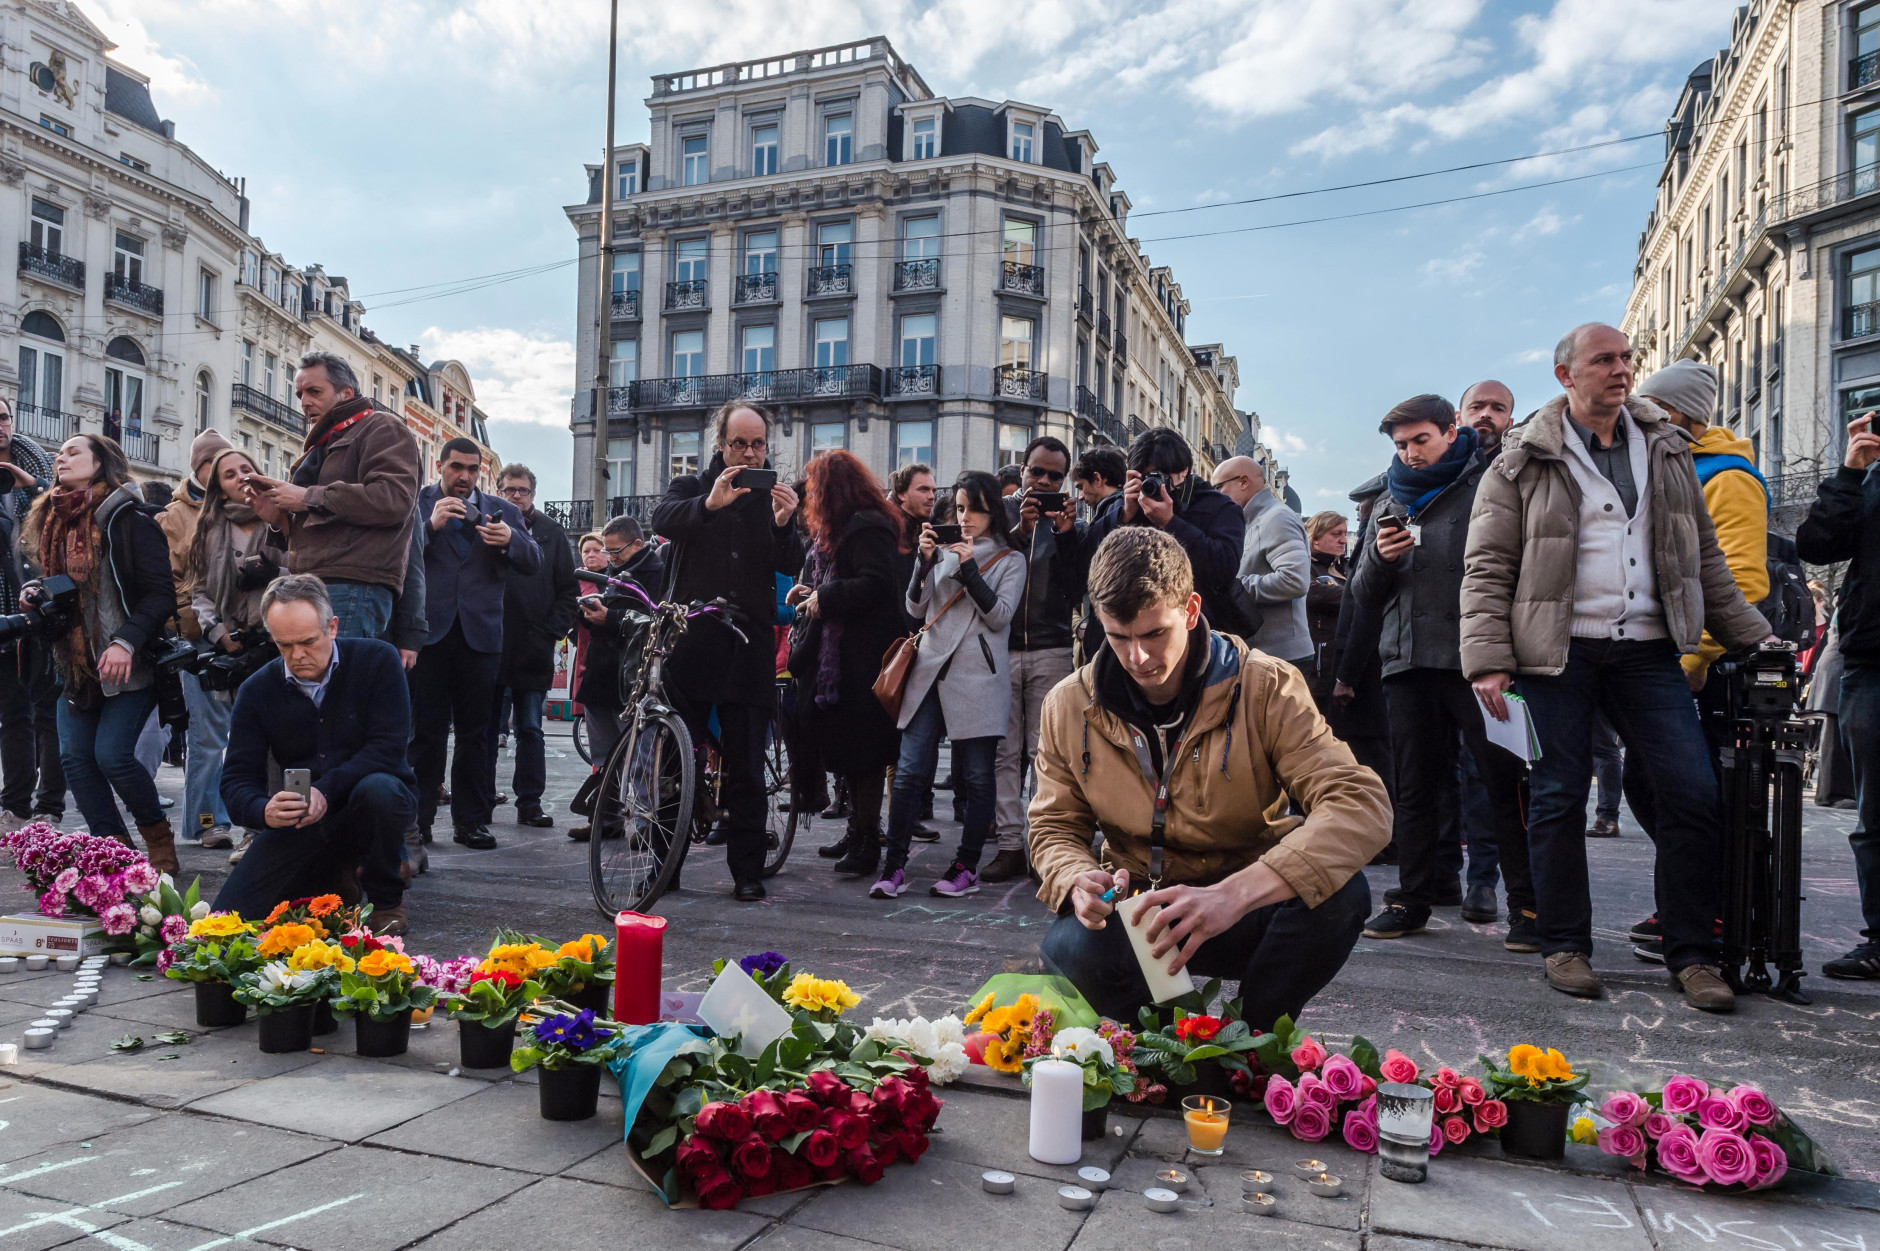 People light candles at a memorial set up outside the stock exchange in Brussels on Tuesday, March 22, 2016. Explosions, at least one likely caused by a suicide bomber, rocked the Brussels airport and subway system Tuesday, prompting a lockdown of the Belgian capital and heightened security across Europe. (AP Photo/Geert Vanden Wijngaert)